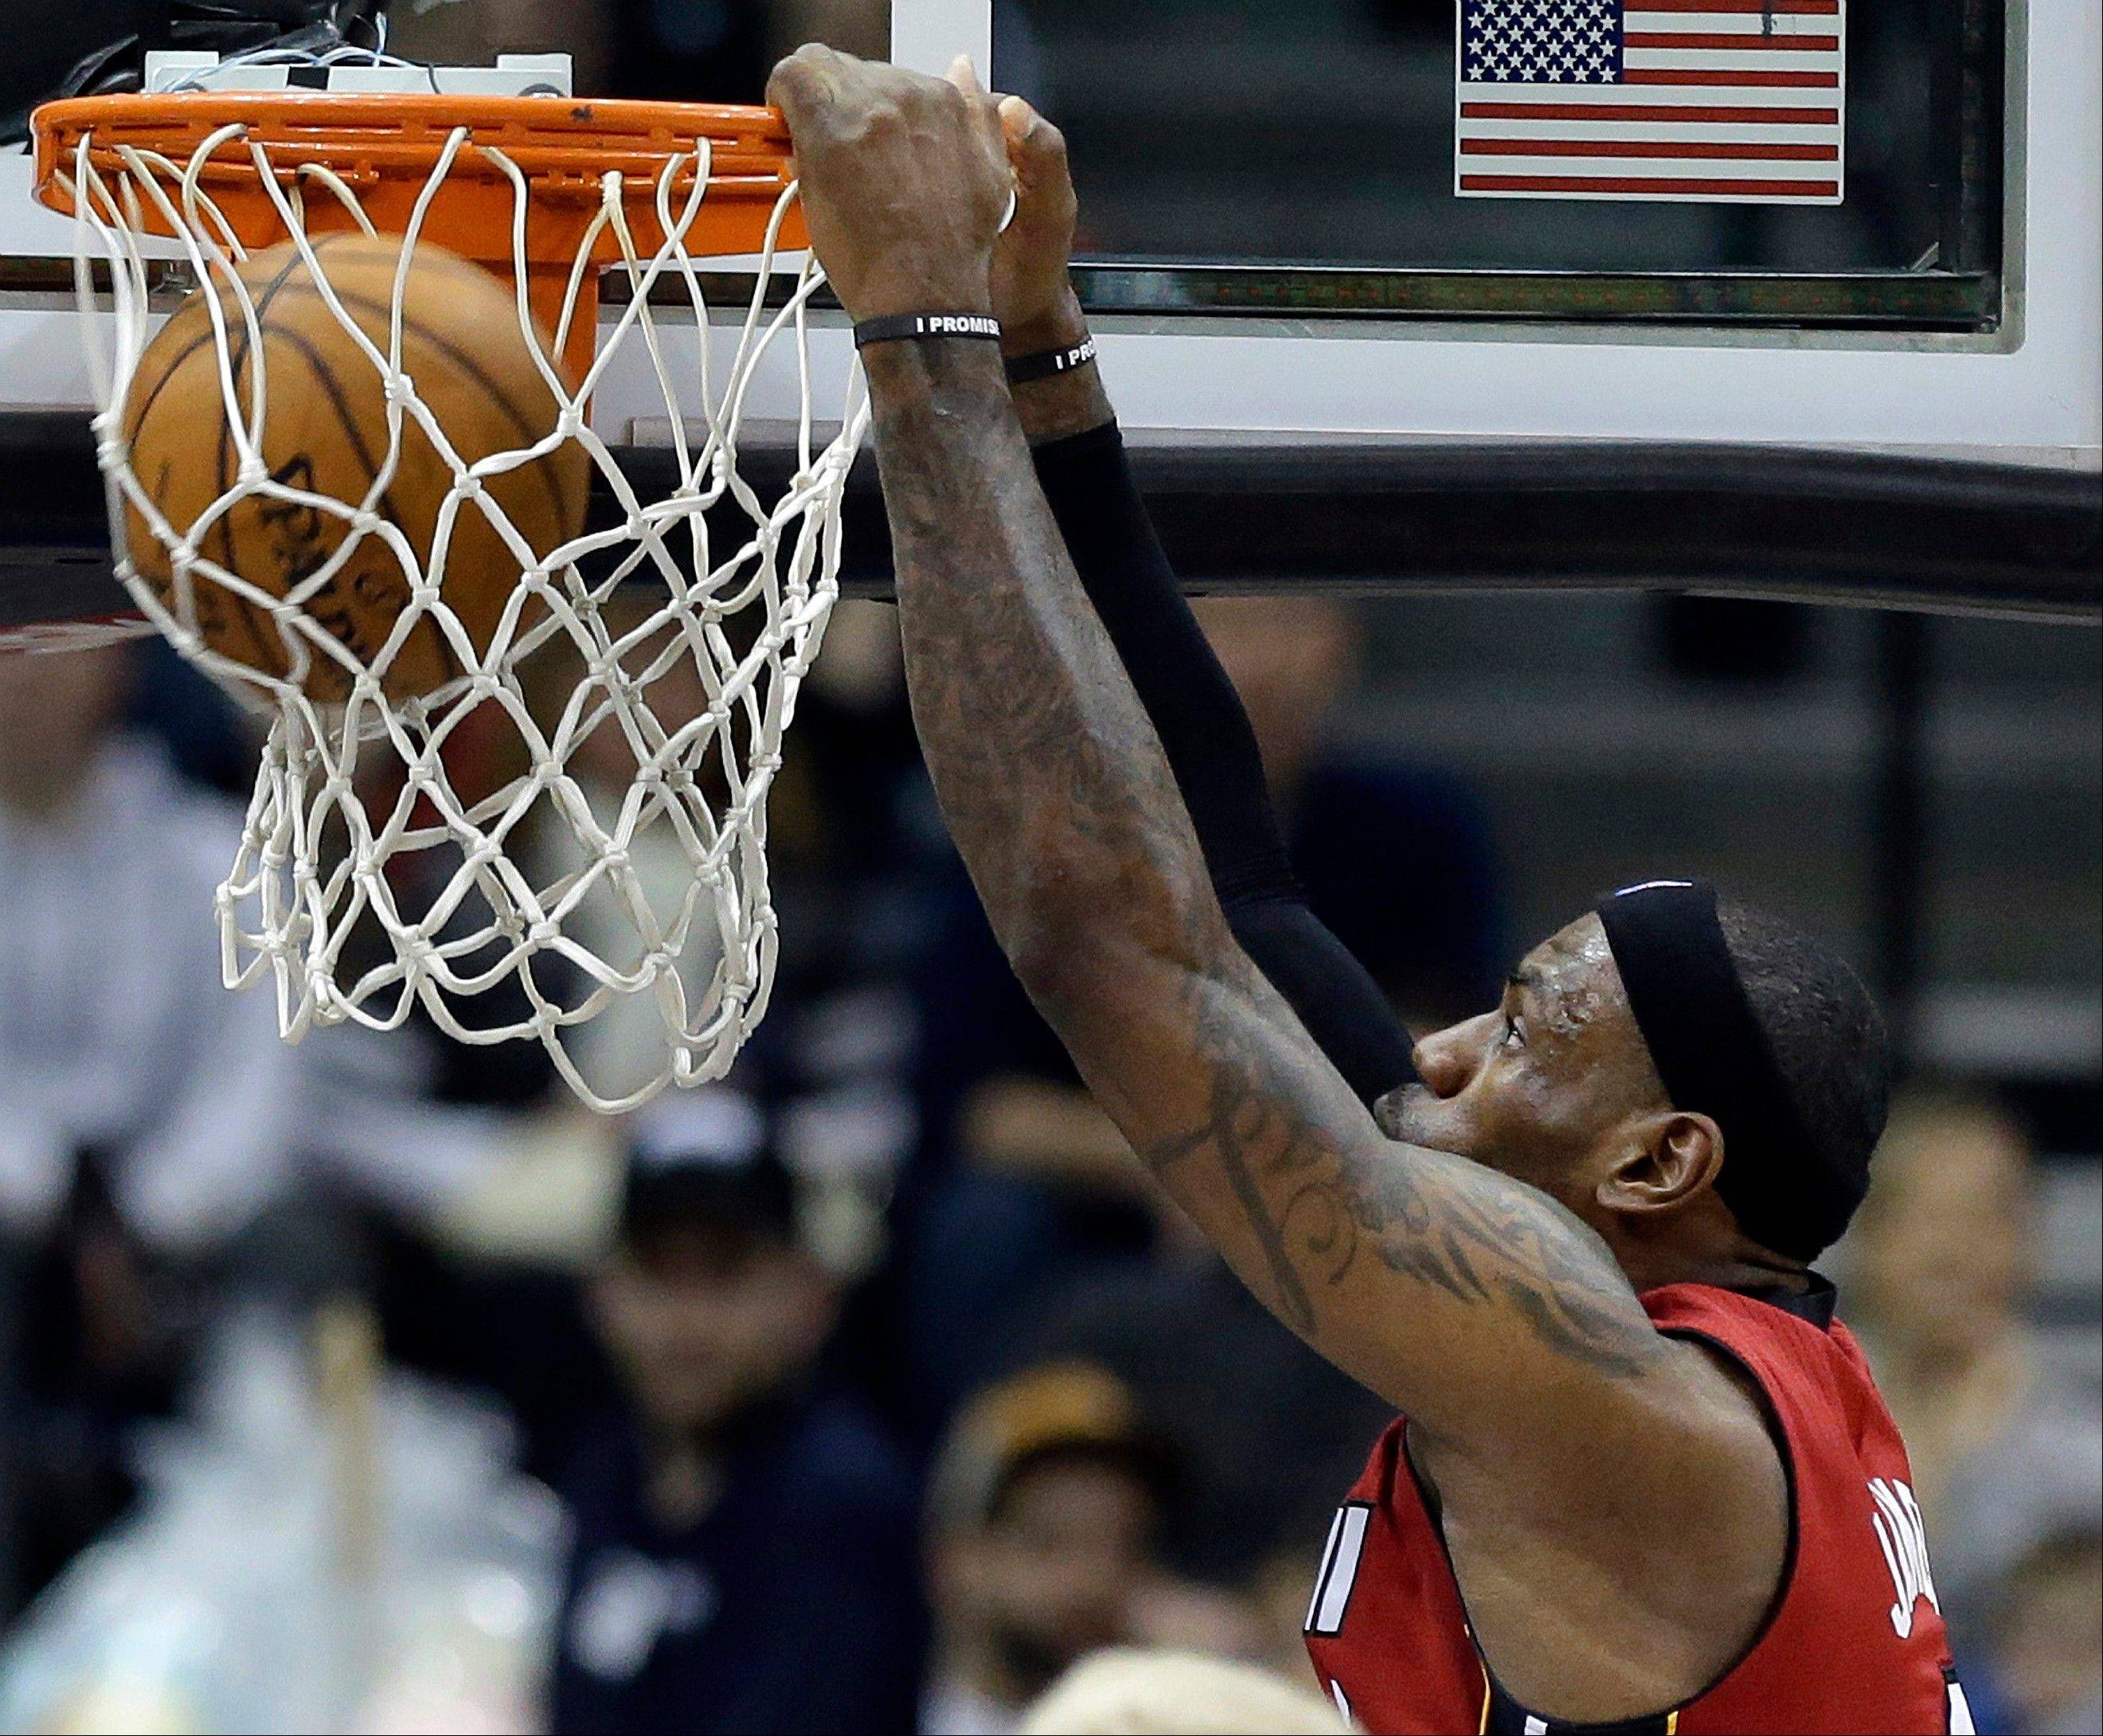 Miami Heat�s LeBron James dunks in the first half of an NBA basketball game against the Minnesota Timberwolves Monday, March 4, 2013, in Minneapolis.